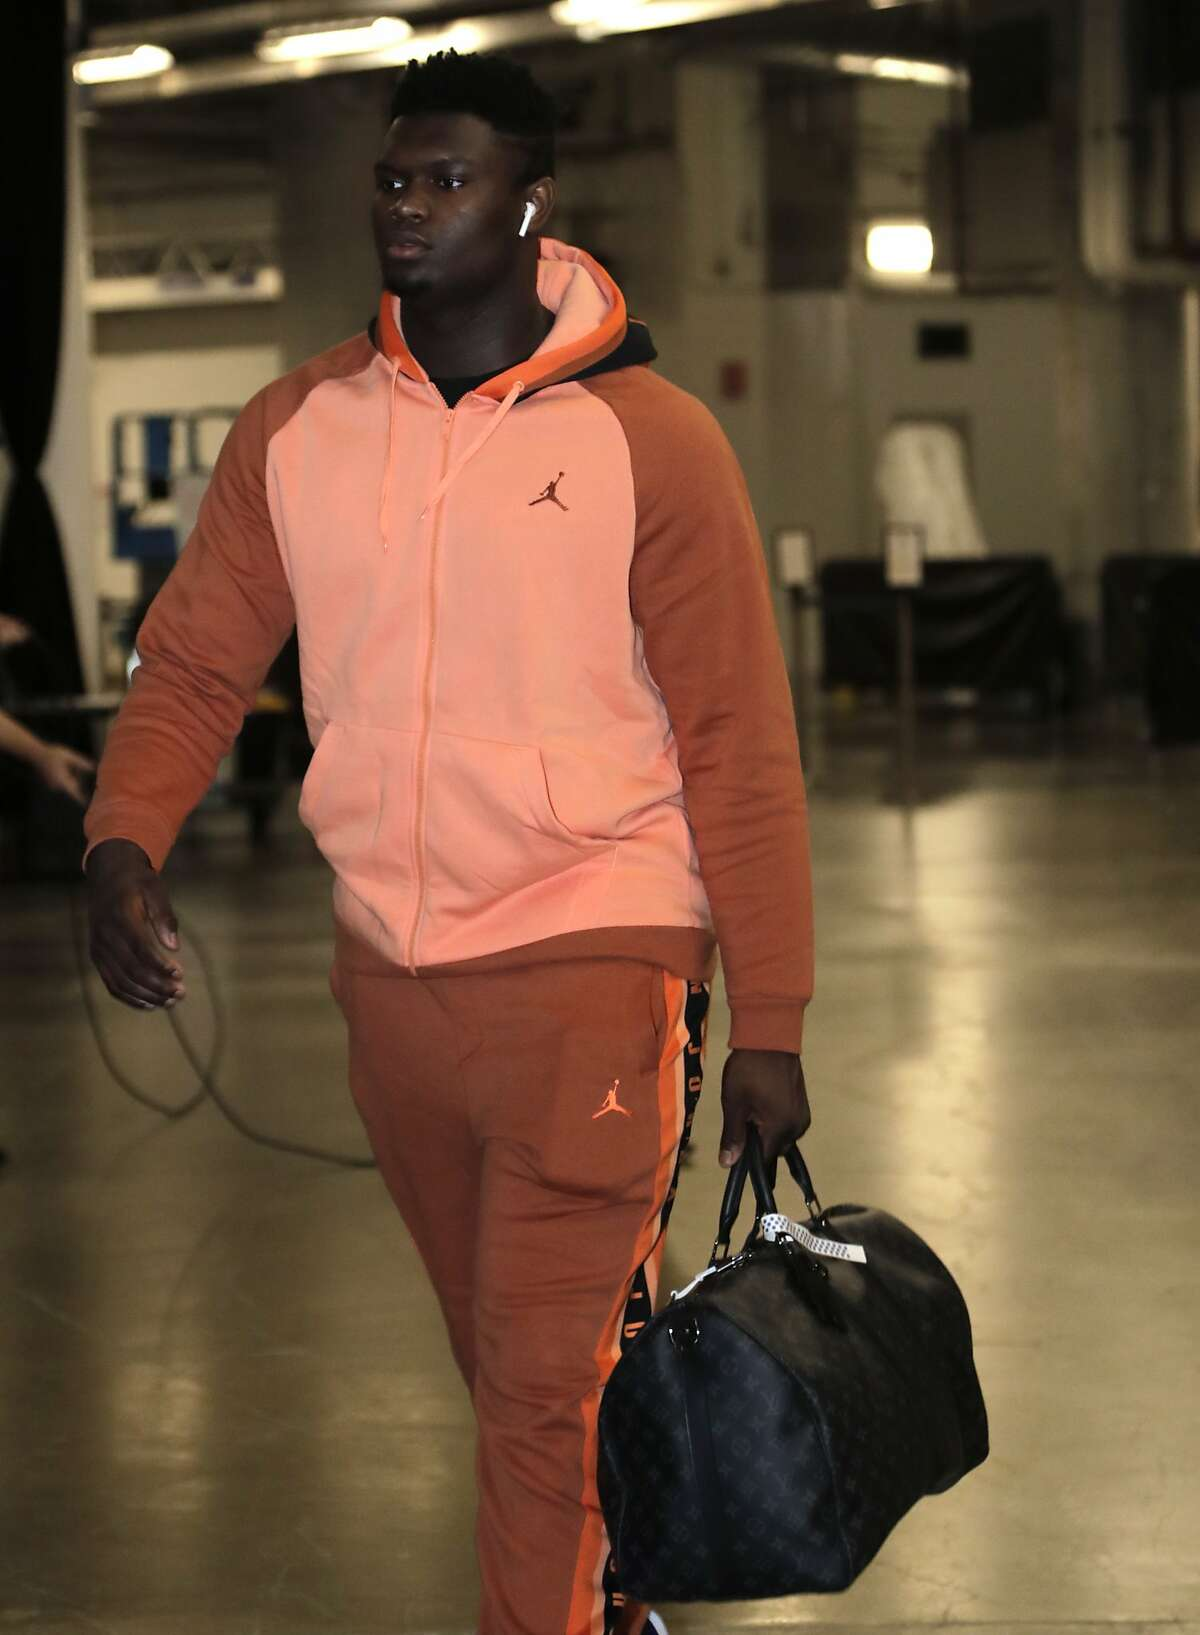 New Orleans Pelicans forward Zion Williamson arrives for an NBA basketball game against the Miami Heat, Saturday, Nov. 16, 2019, in Miami. (AP Photo/Lynne Sladky)